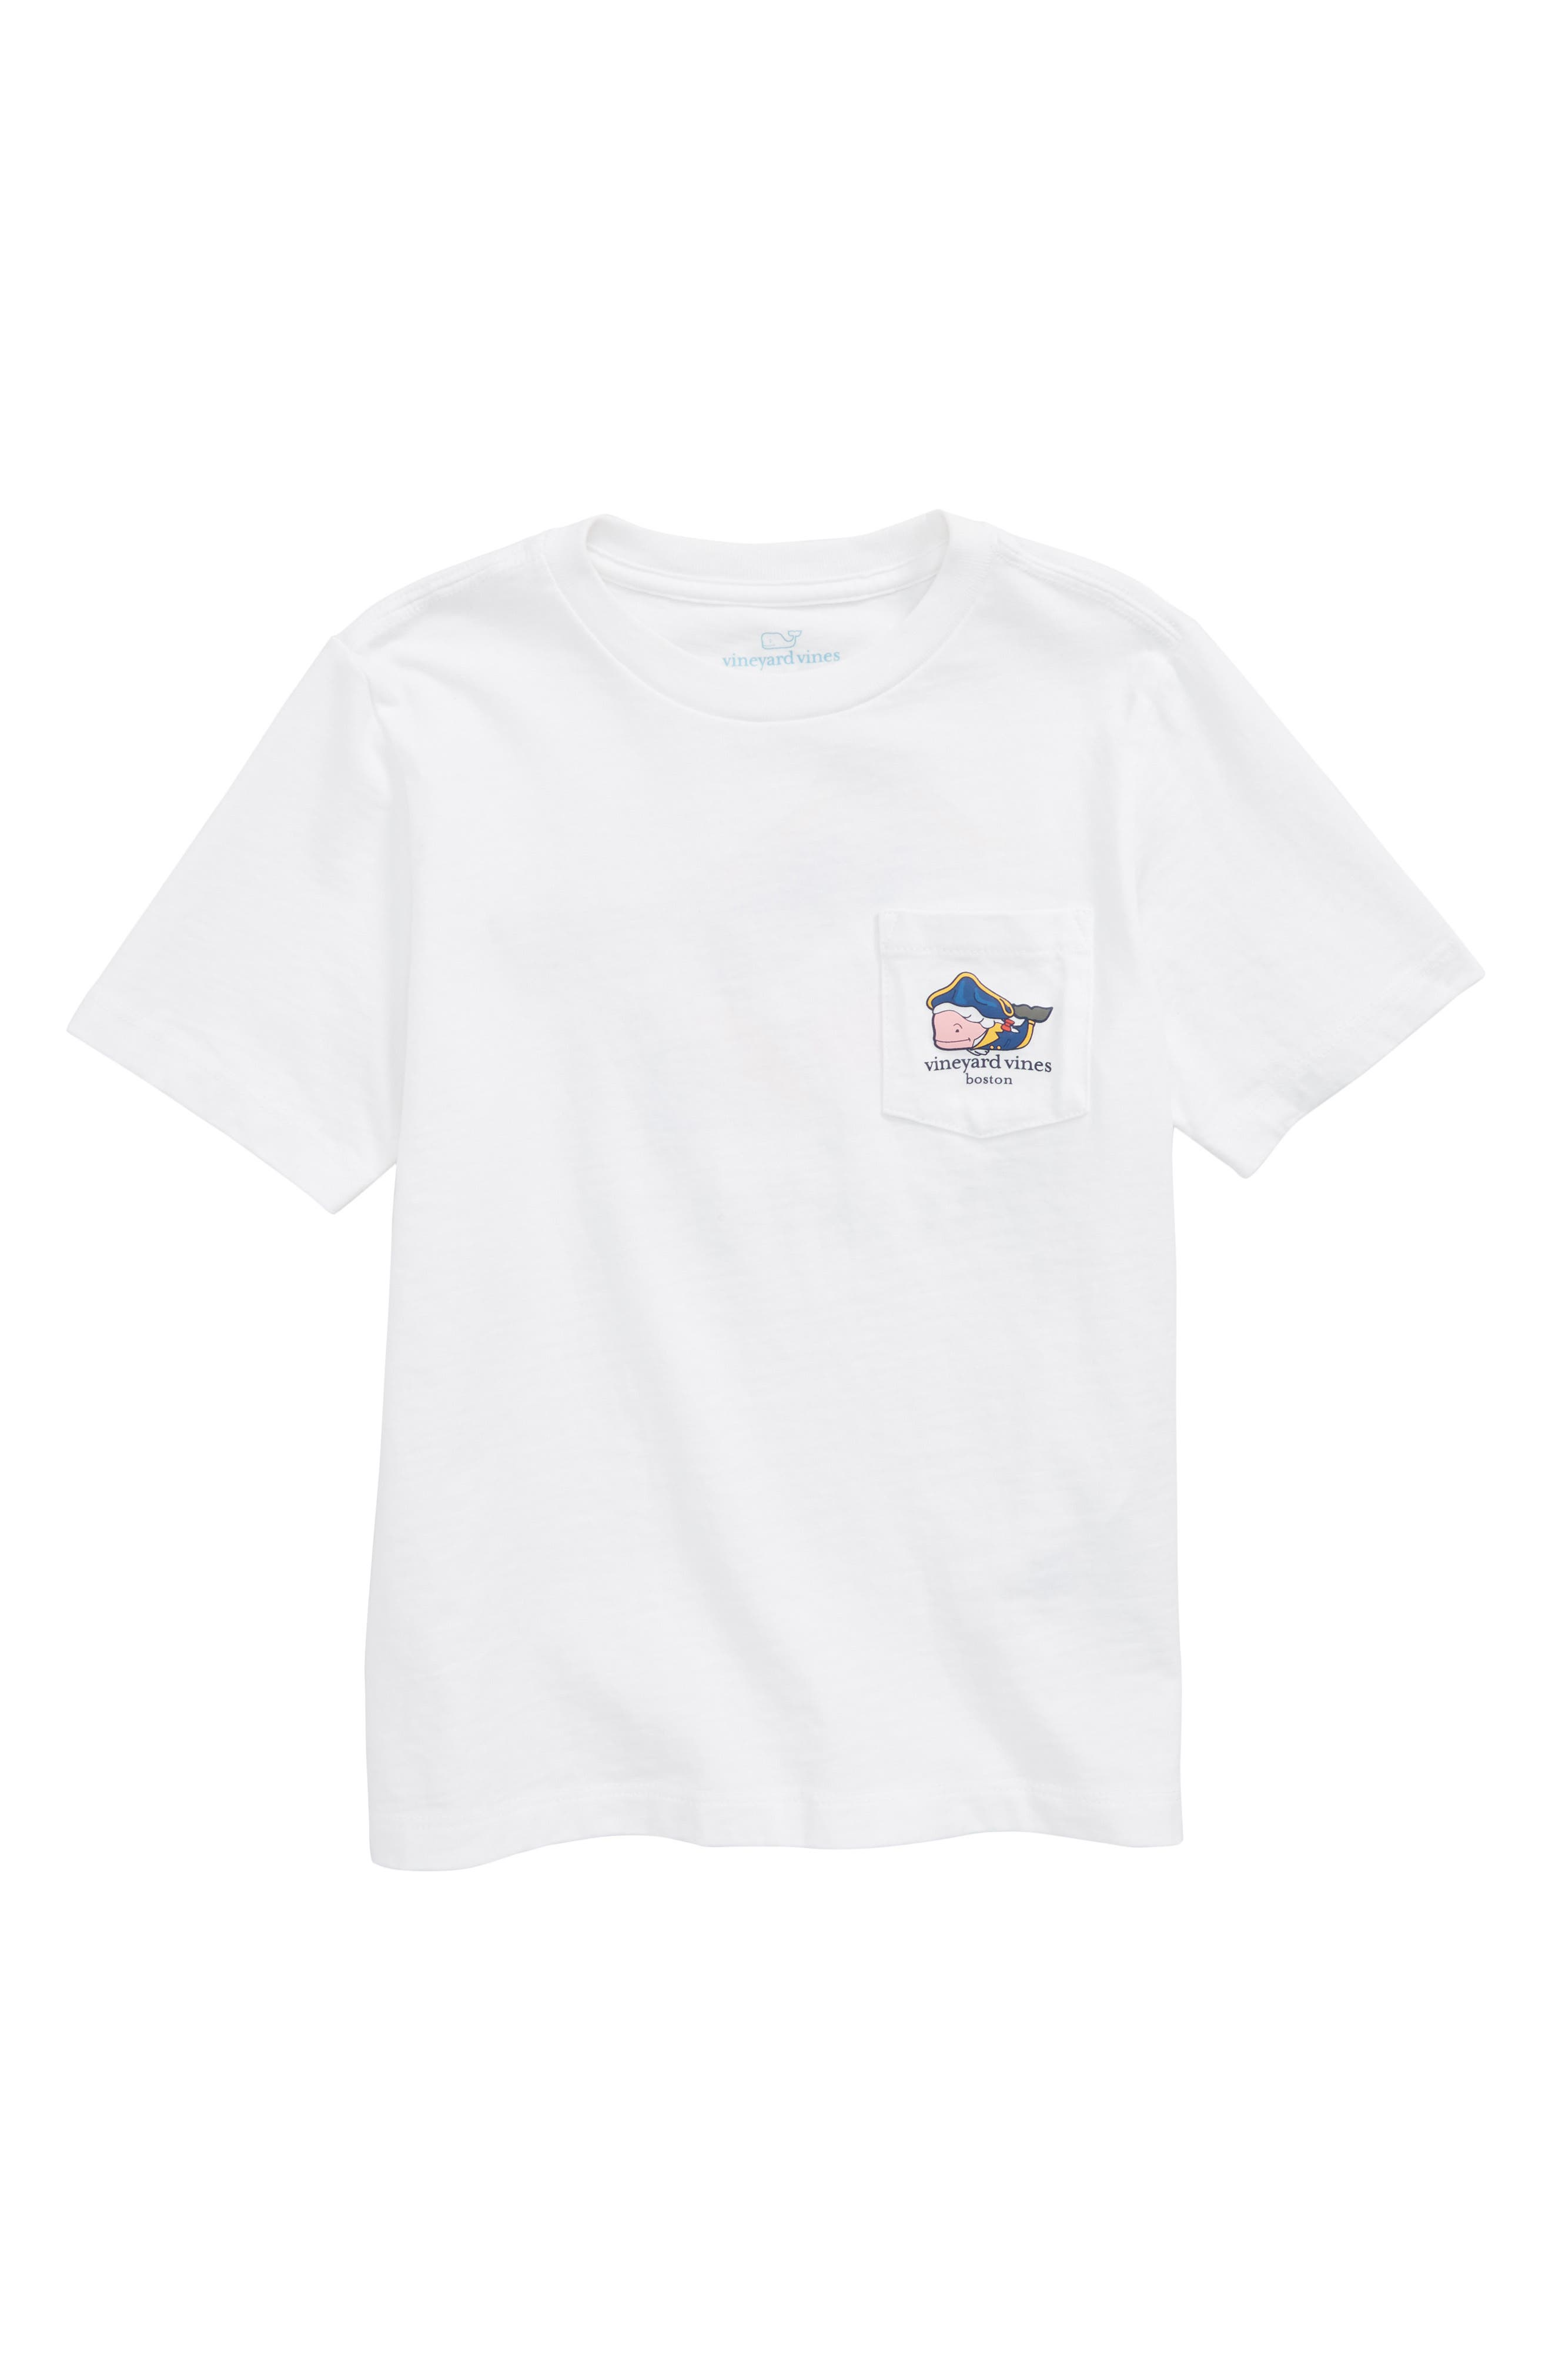 Alternate Image 1 Selected - vineyard vines Boston Whale Pocket T-Shirt (Toddler Boys, Little Boys & Big Boys)